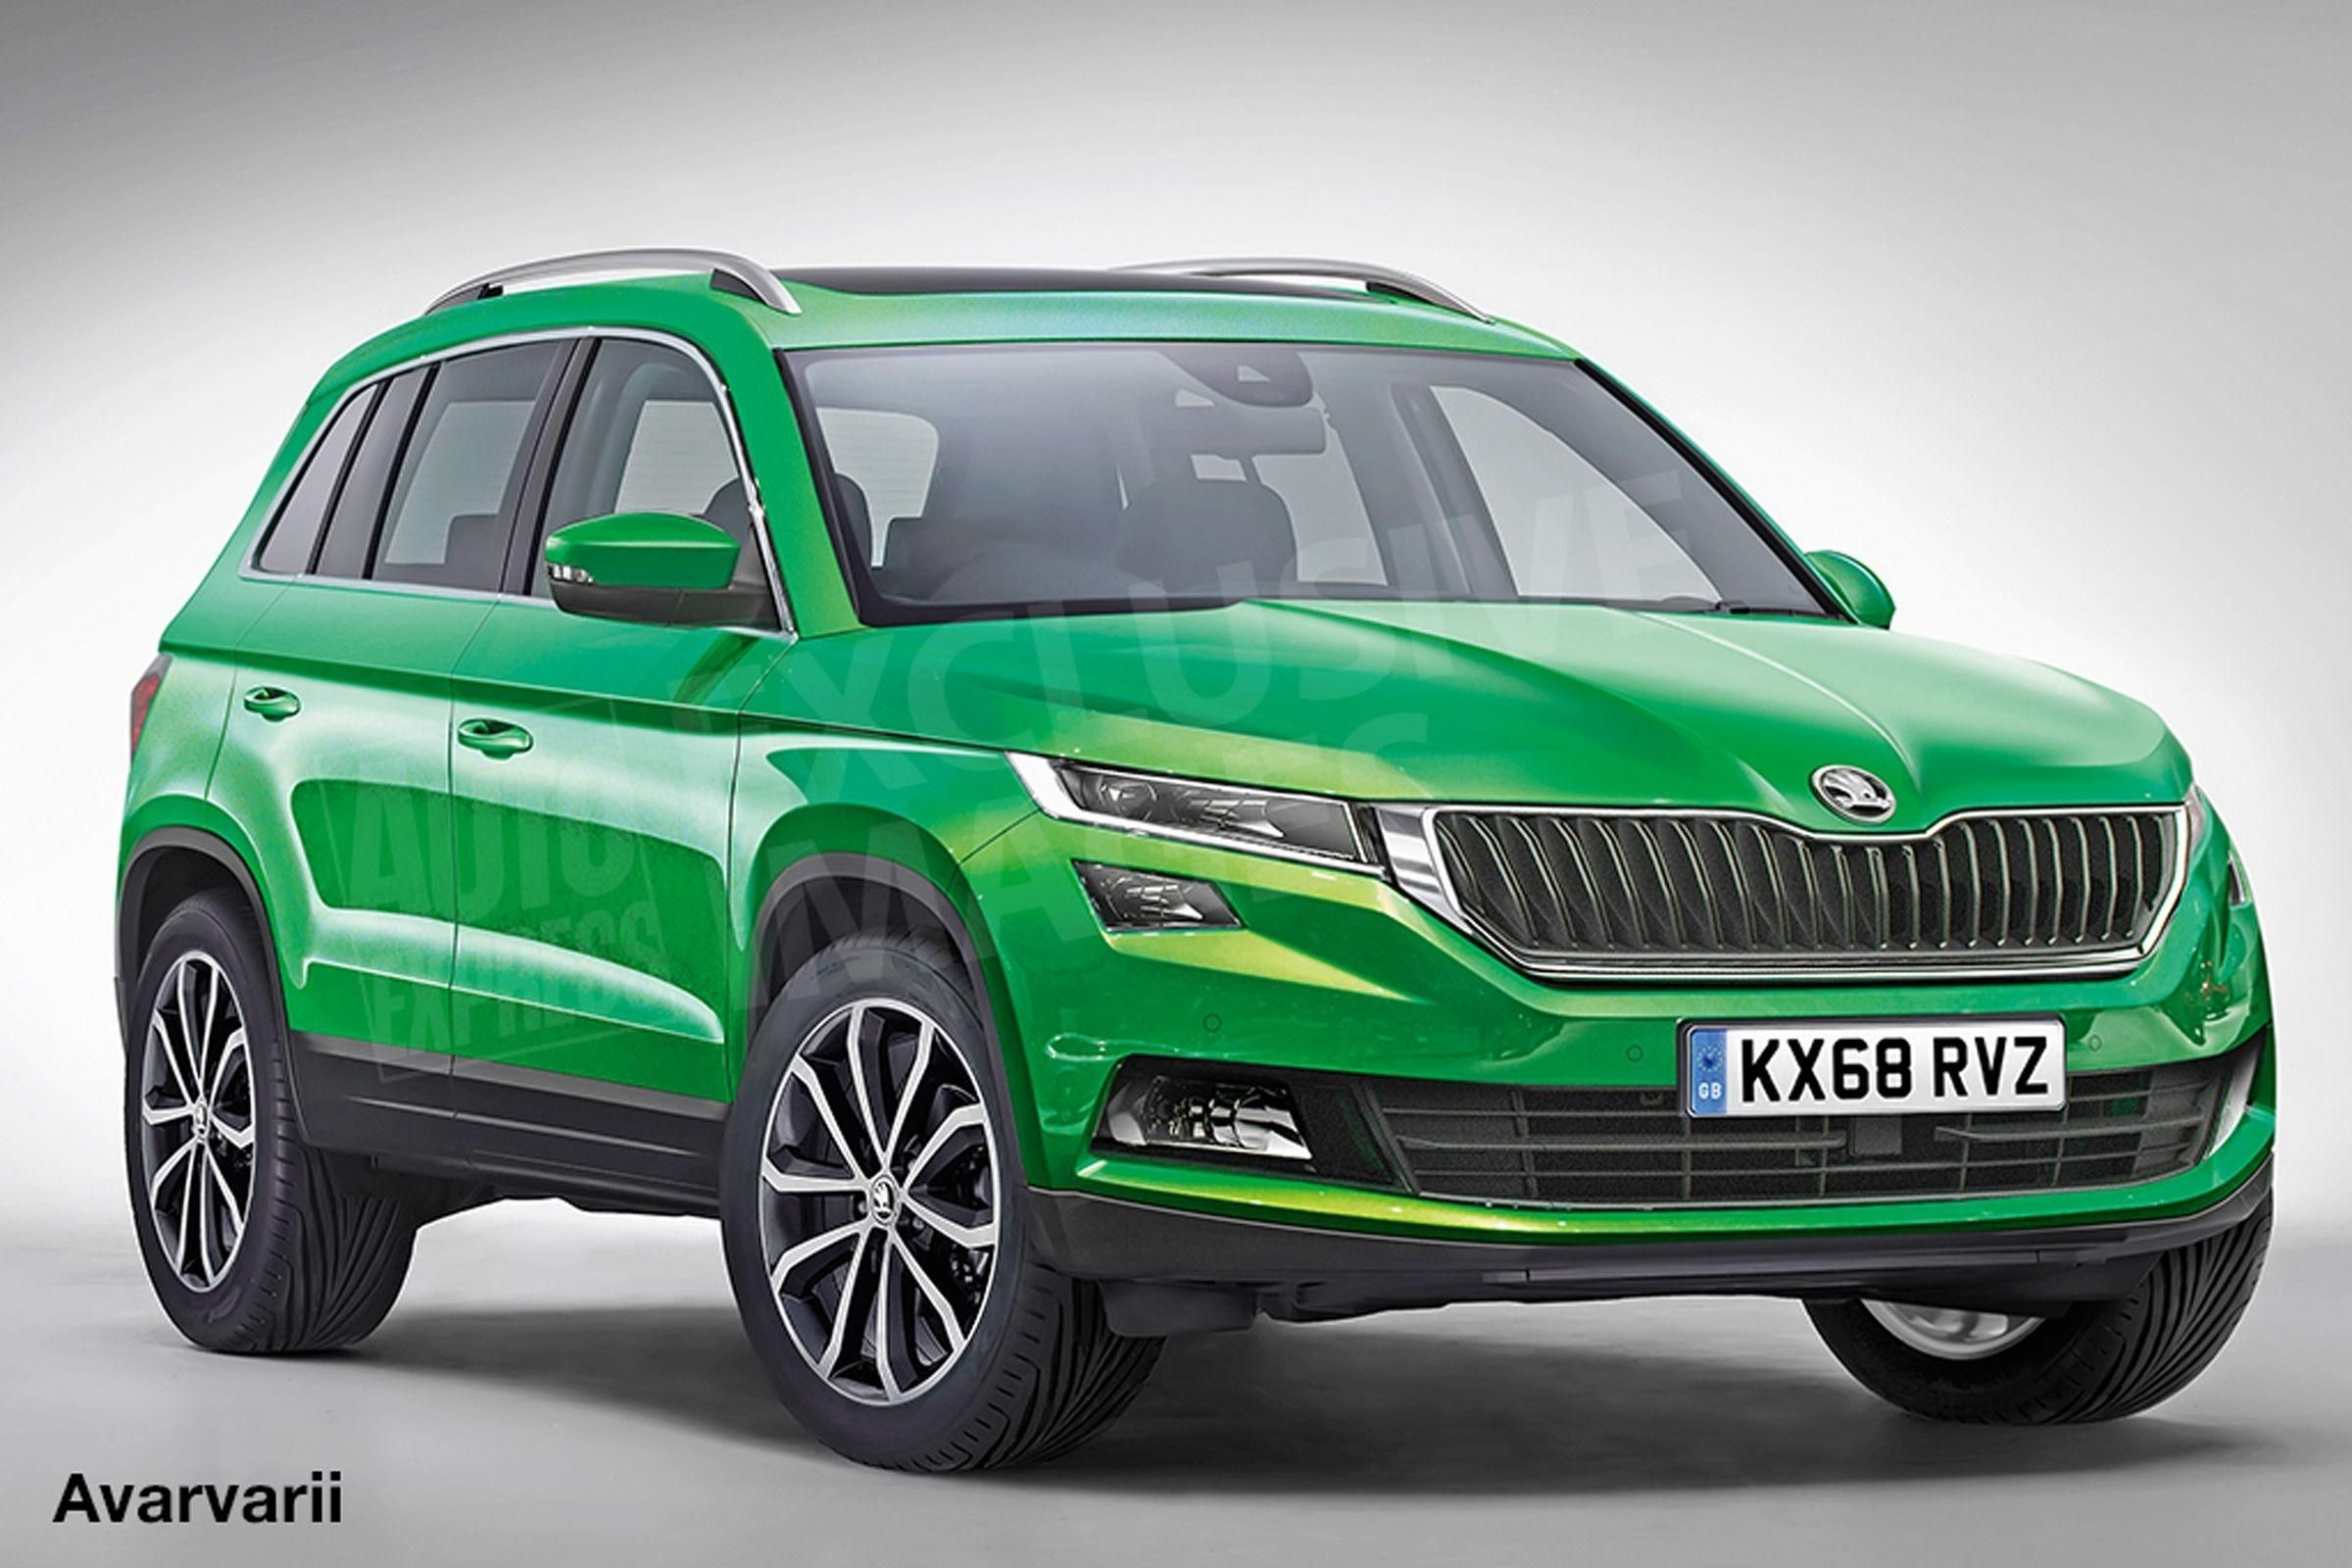 2019 Skoda Yeti Review Car 2018 With Regard To 2019 Skoda Yeti